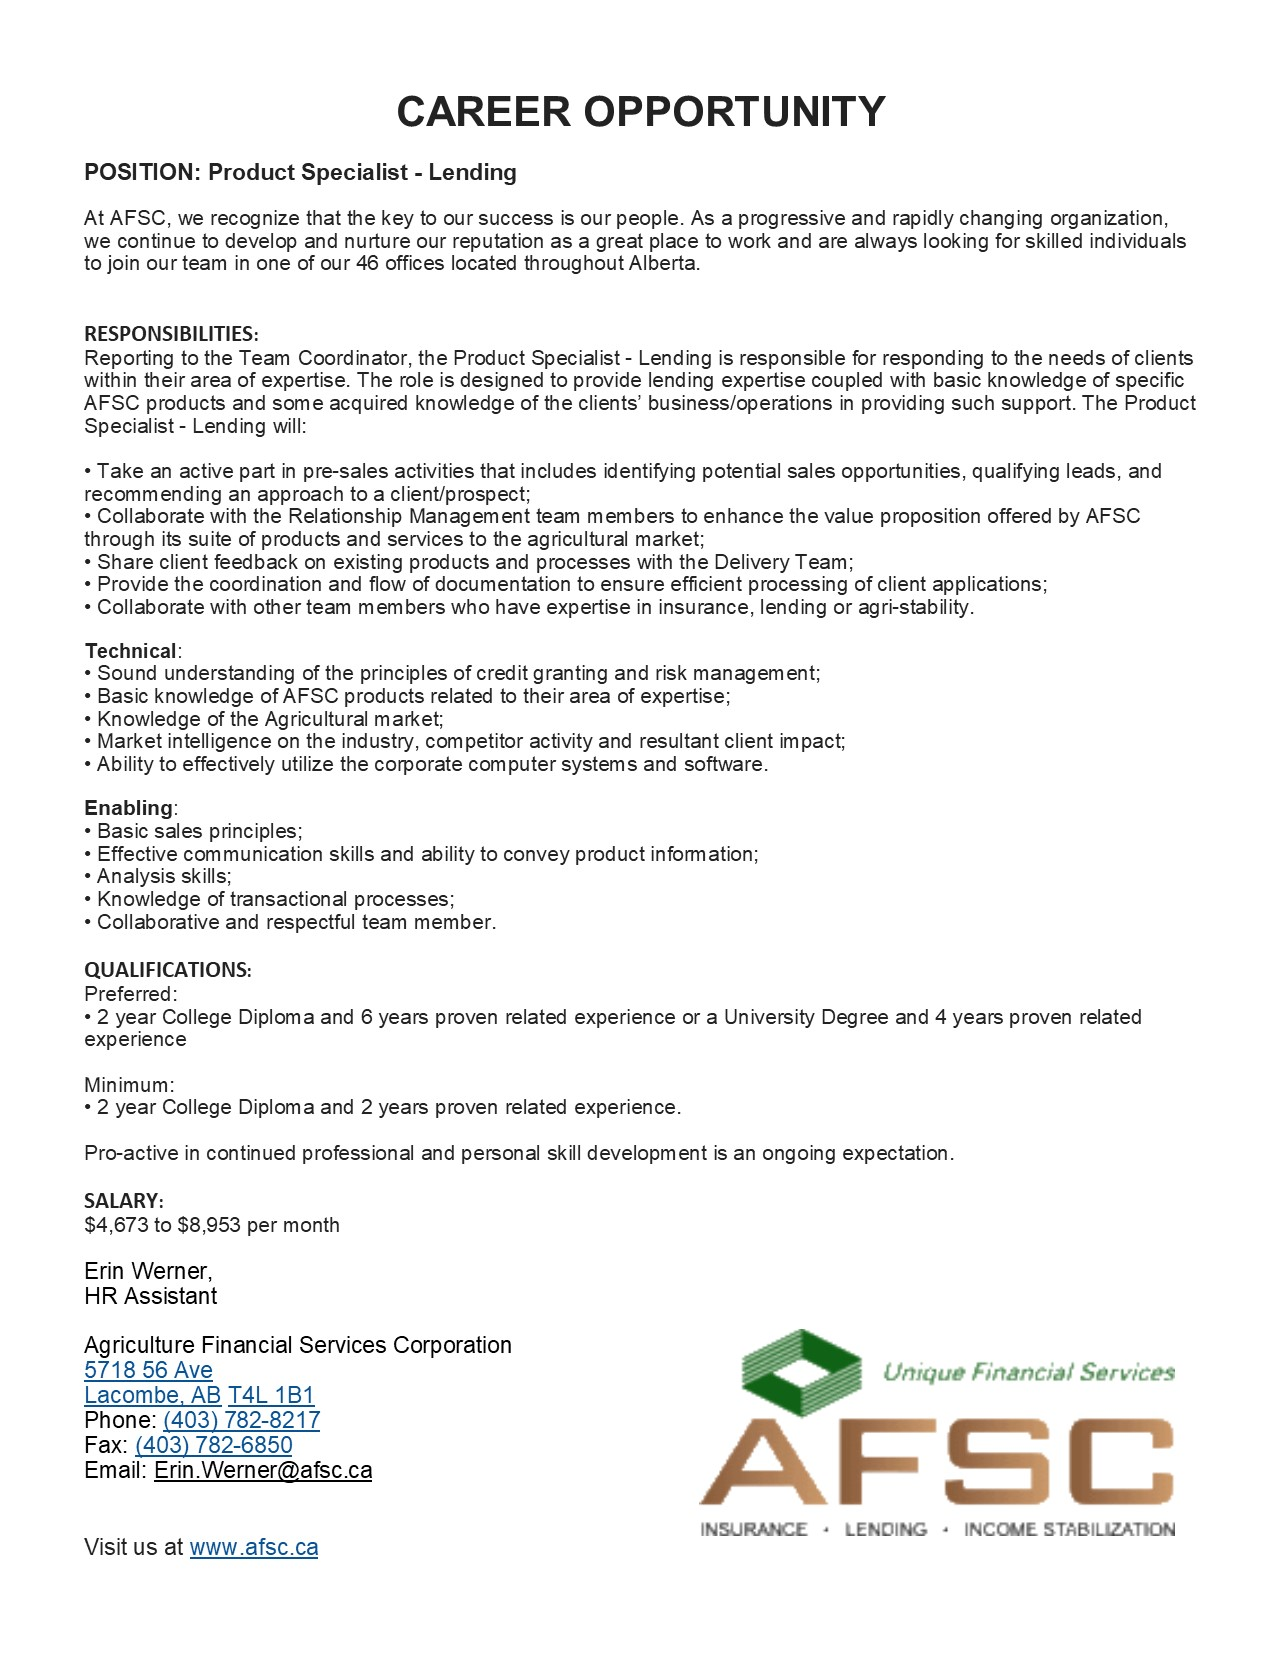 AFSC Product Specialist